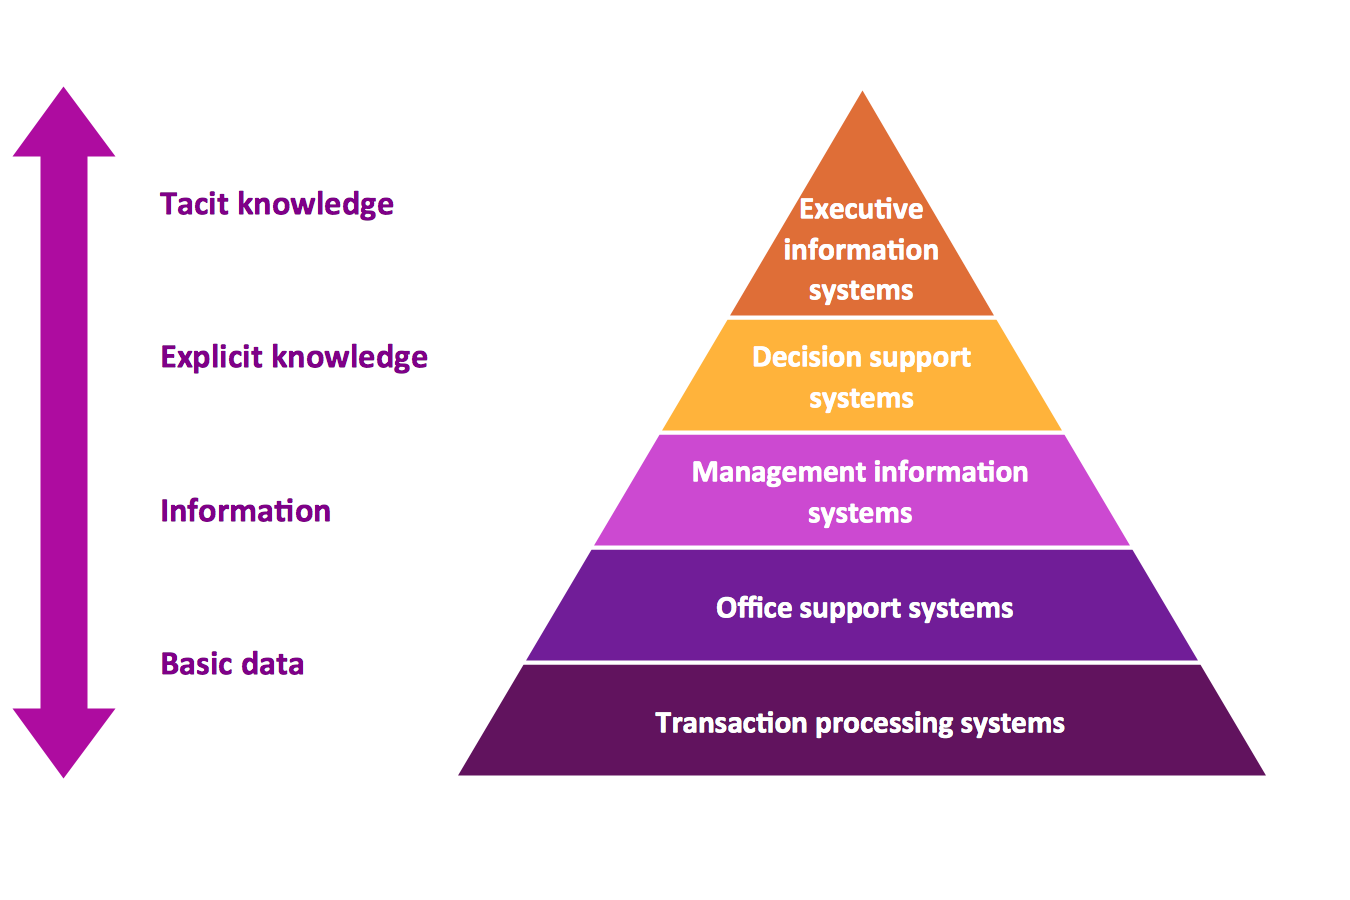 5 Level Pyramid Model of Information Systems Types